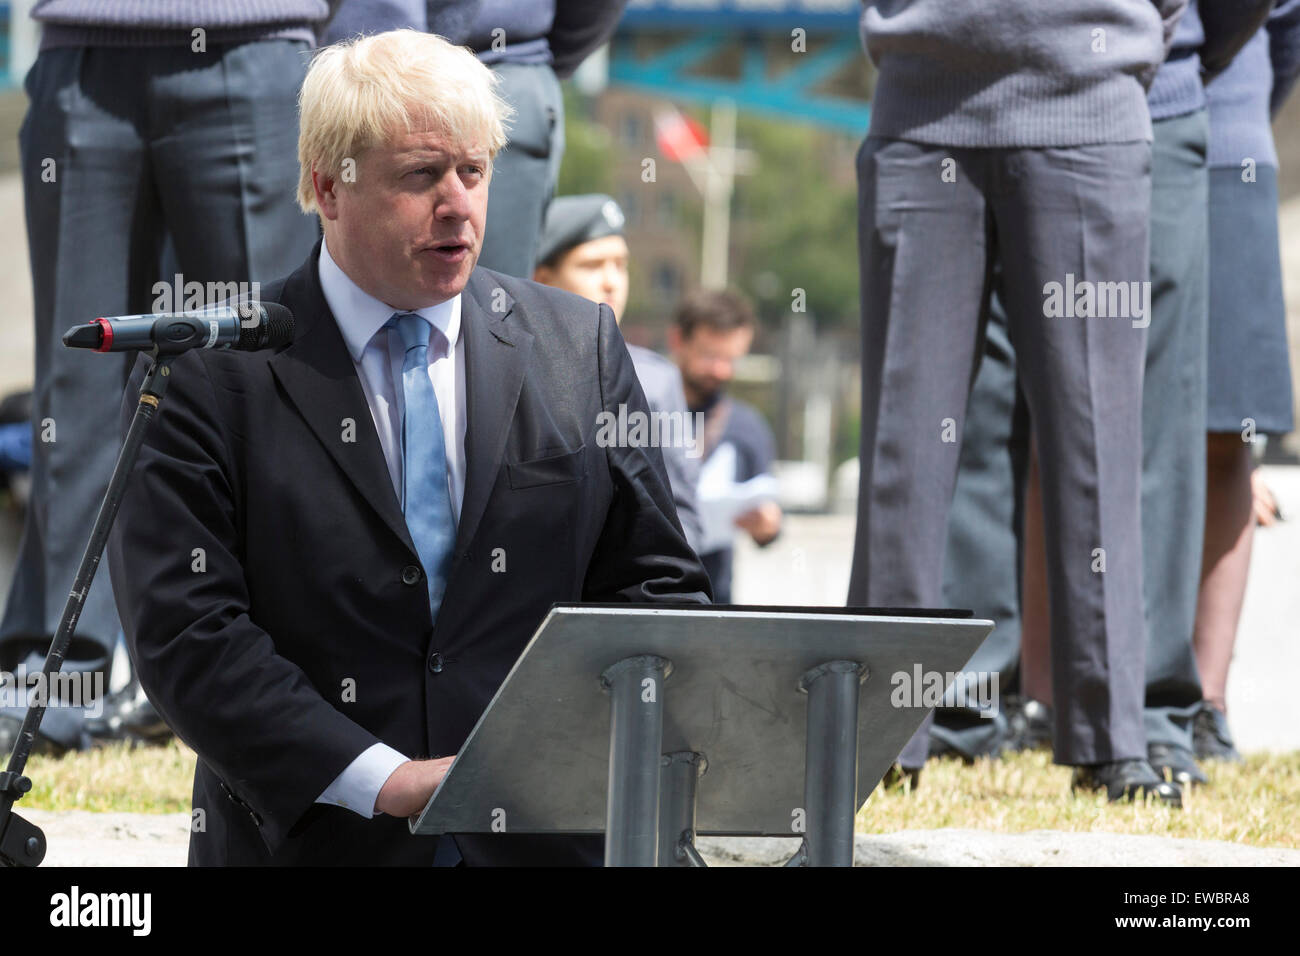 London, UK. 22 June 2015. Boris Johnson, the Mayor of London, and London Assembly members joined British Armed Forces Stock Photo